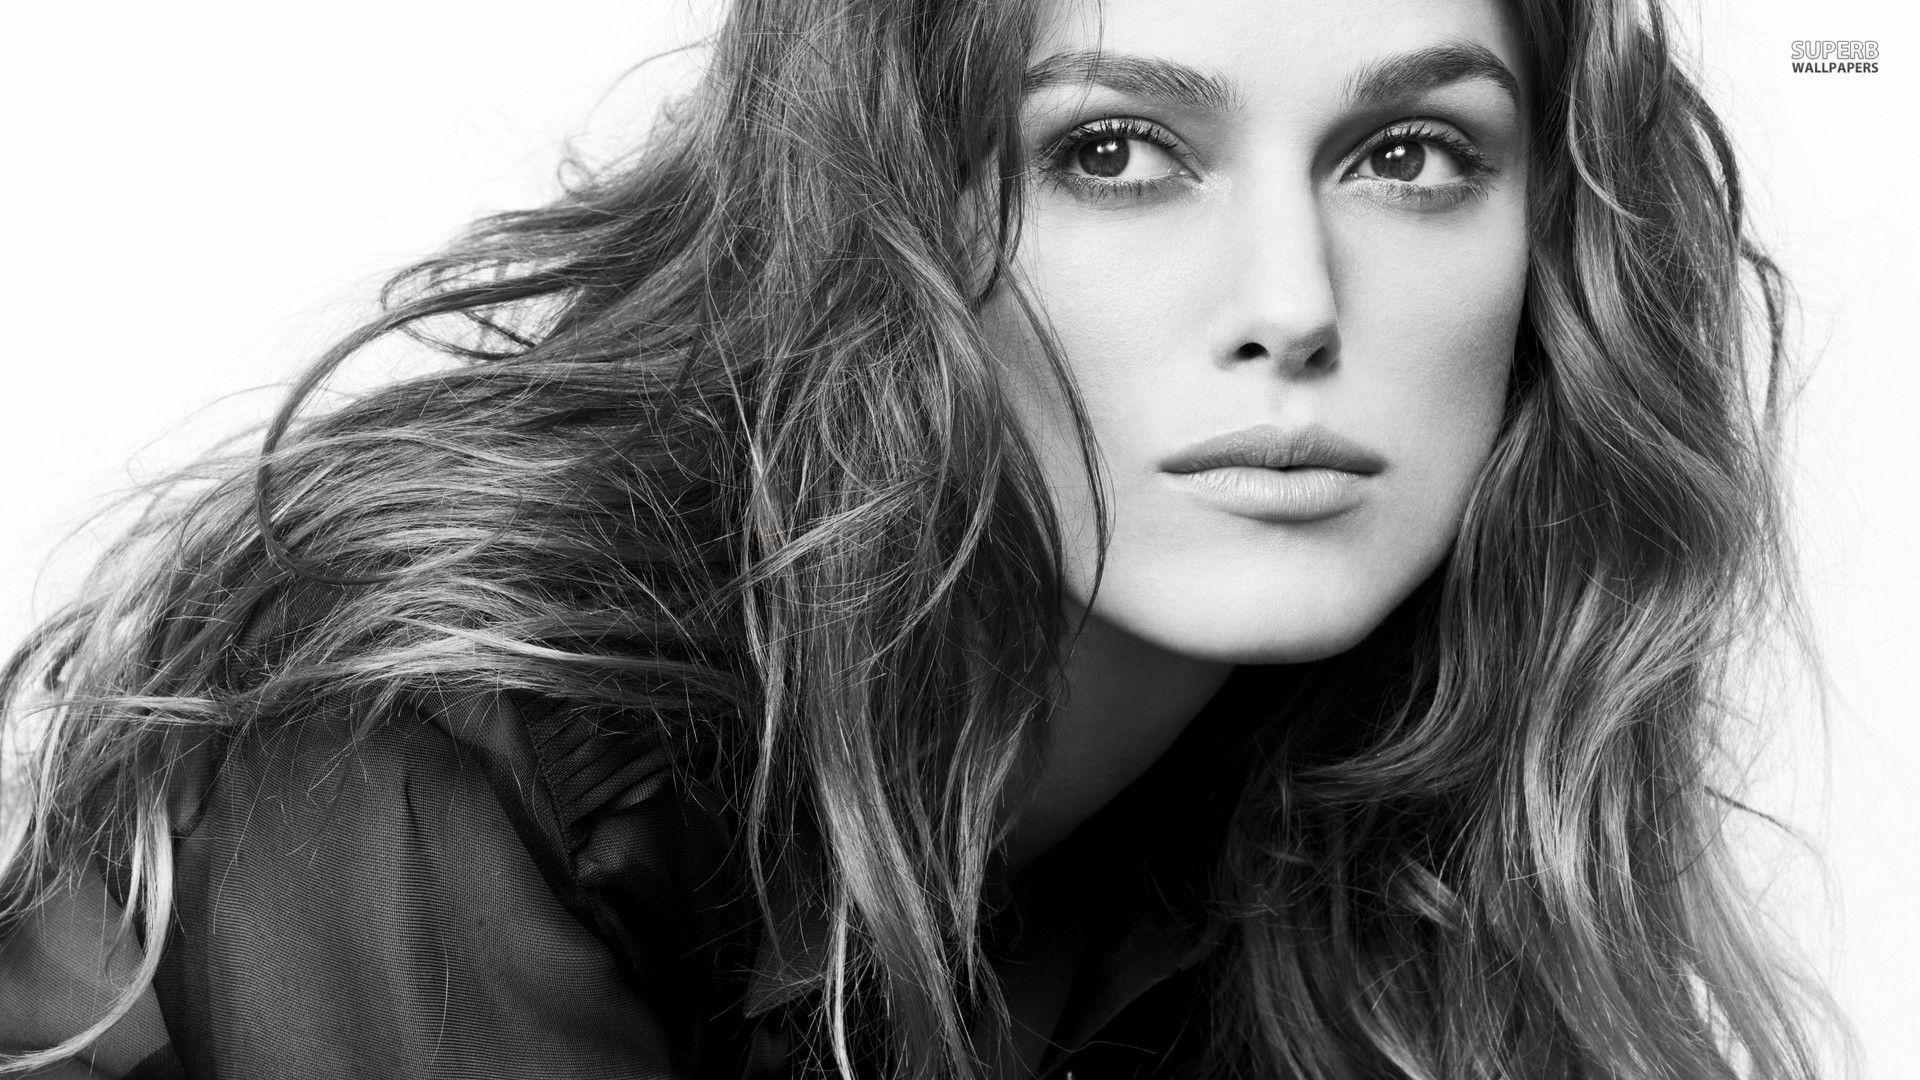 Keira Knightley Full HD p Wallpapers And Photos Gallery